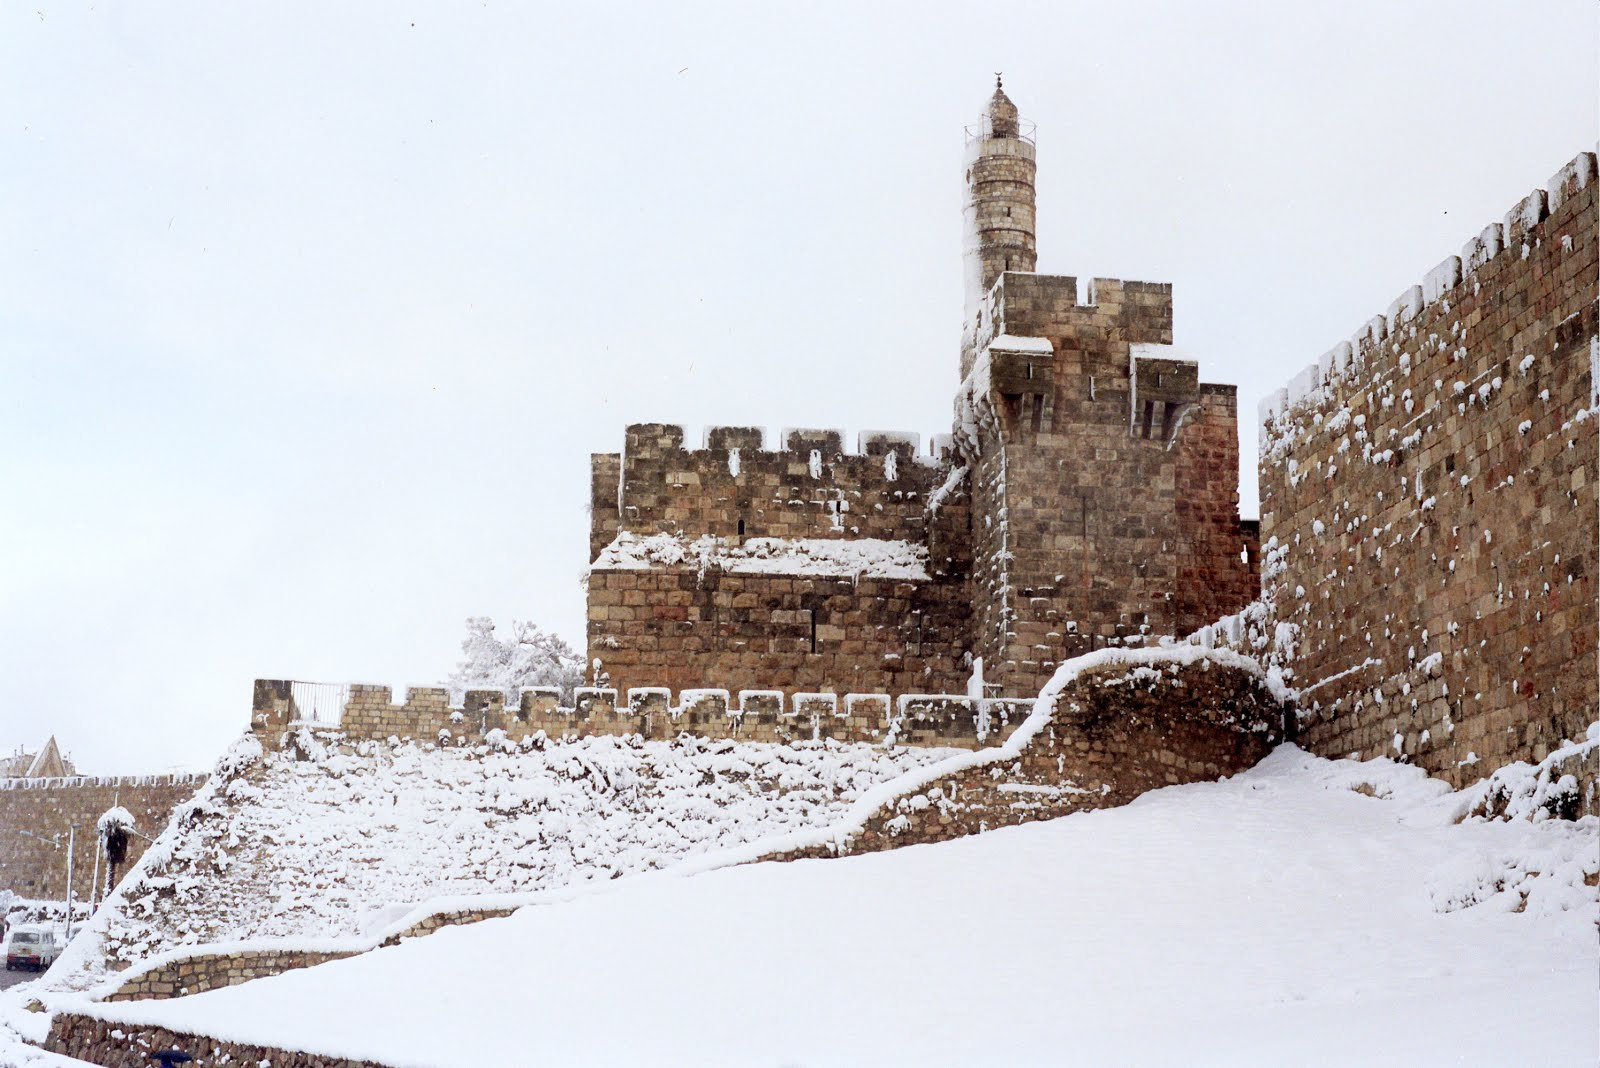 DavidTower in snow.jpg